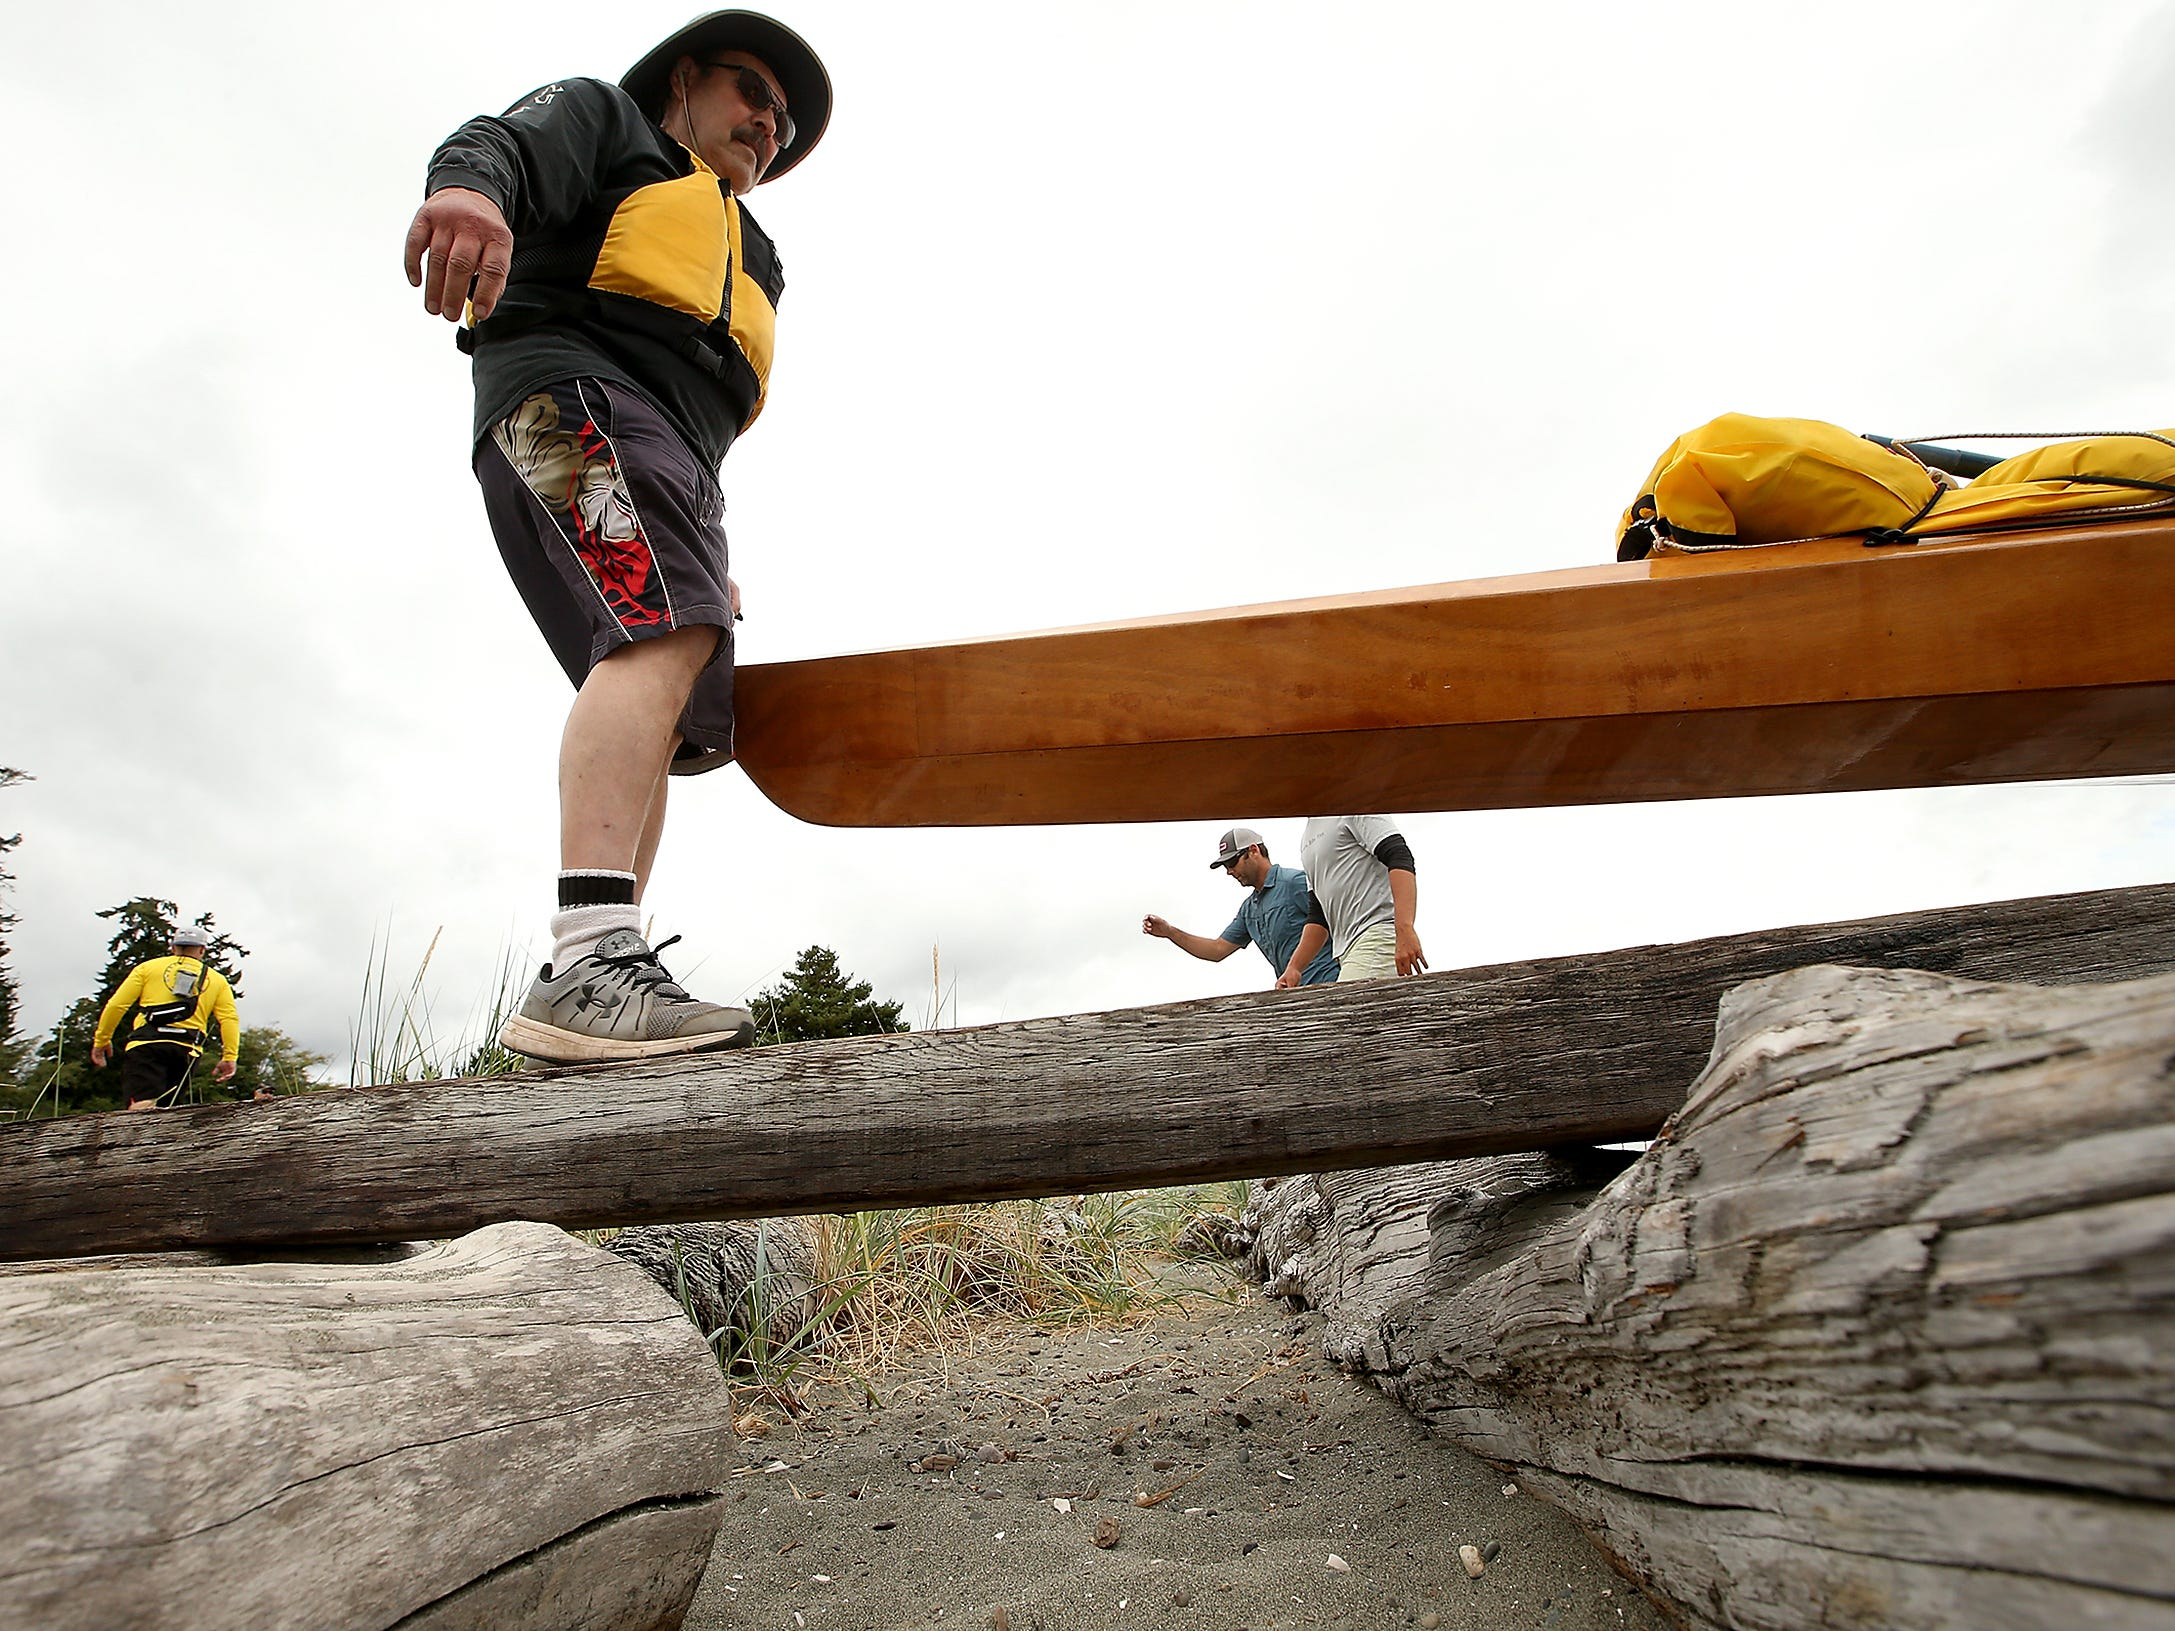 Jack Corbett, of Silverdale, carries one end of the kayak across the driftwood logs as he and fellow paddler Peter Horton carefully balance and make their way to the water for the start of Olympic Outdoor Center's Paddle Kitsap at Bainbridge Island's Fay Bainbridge Park on Saturday, August 11, 2018.